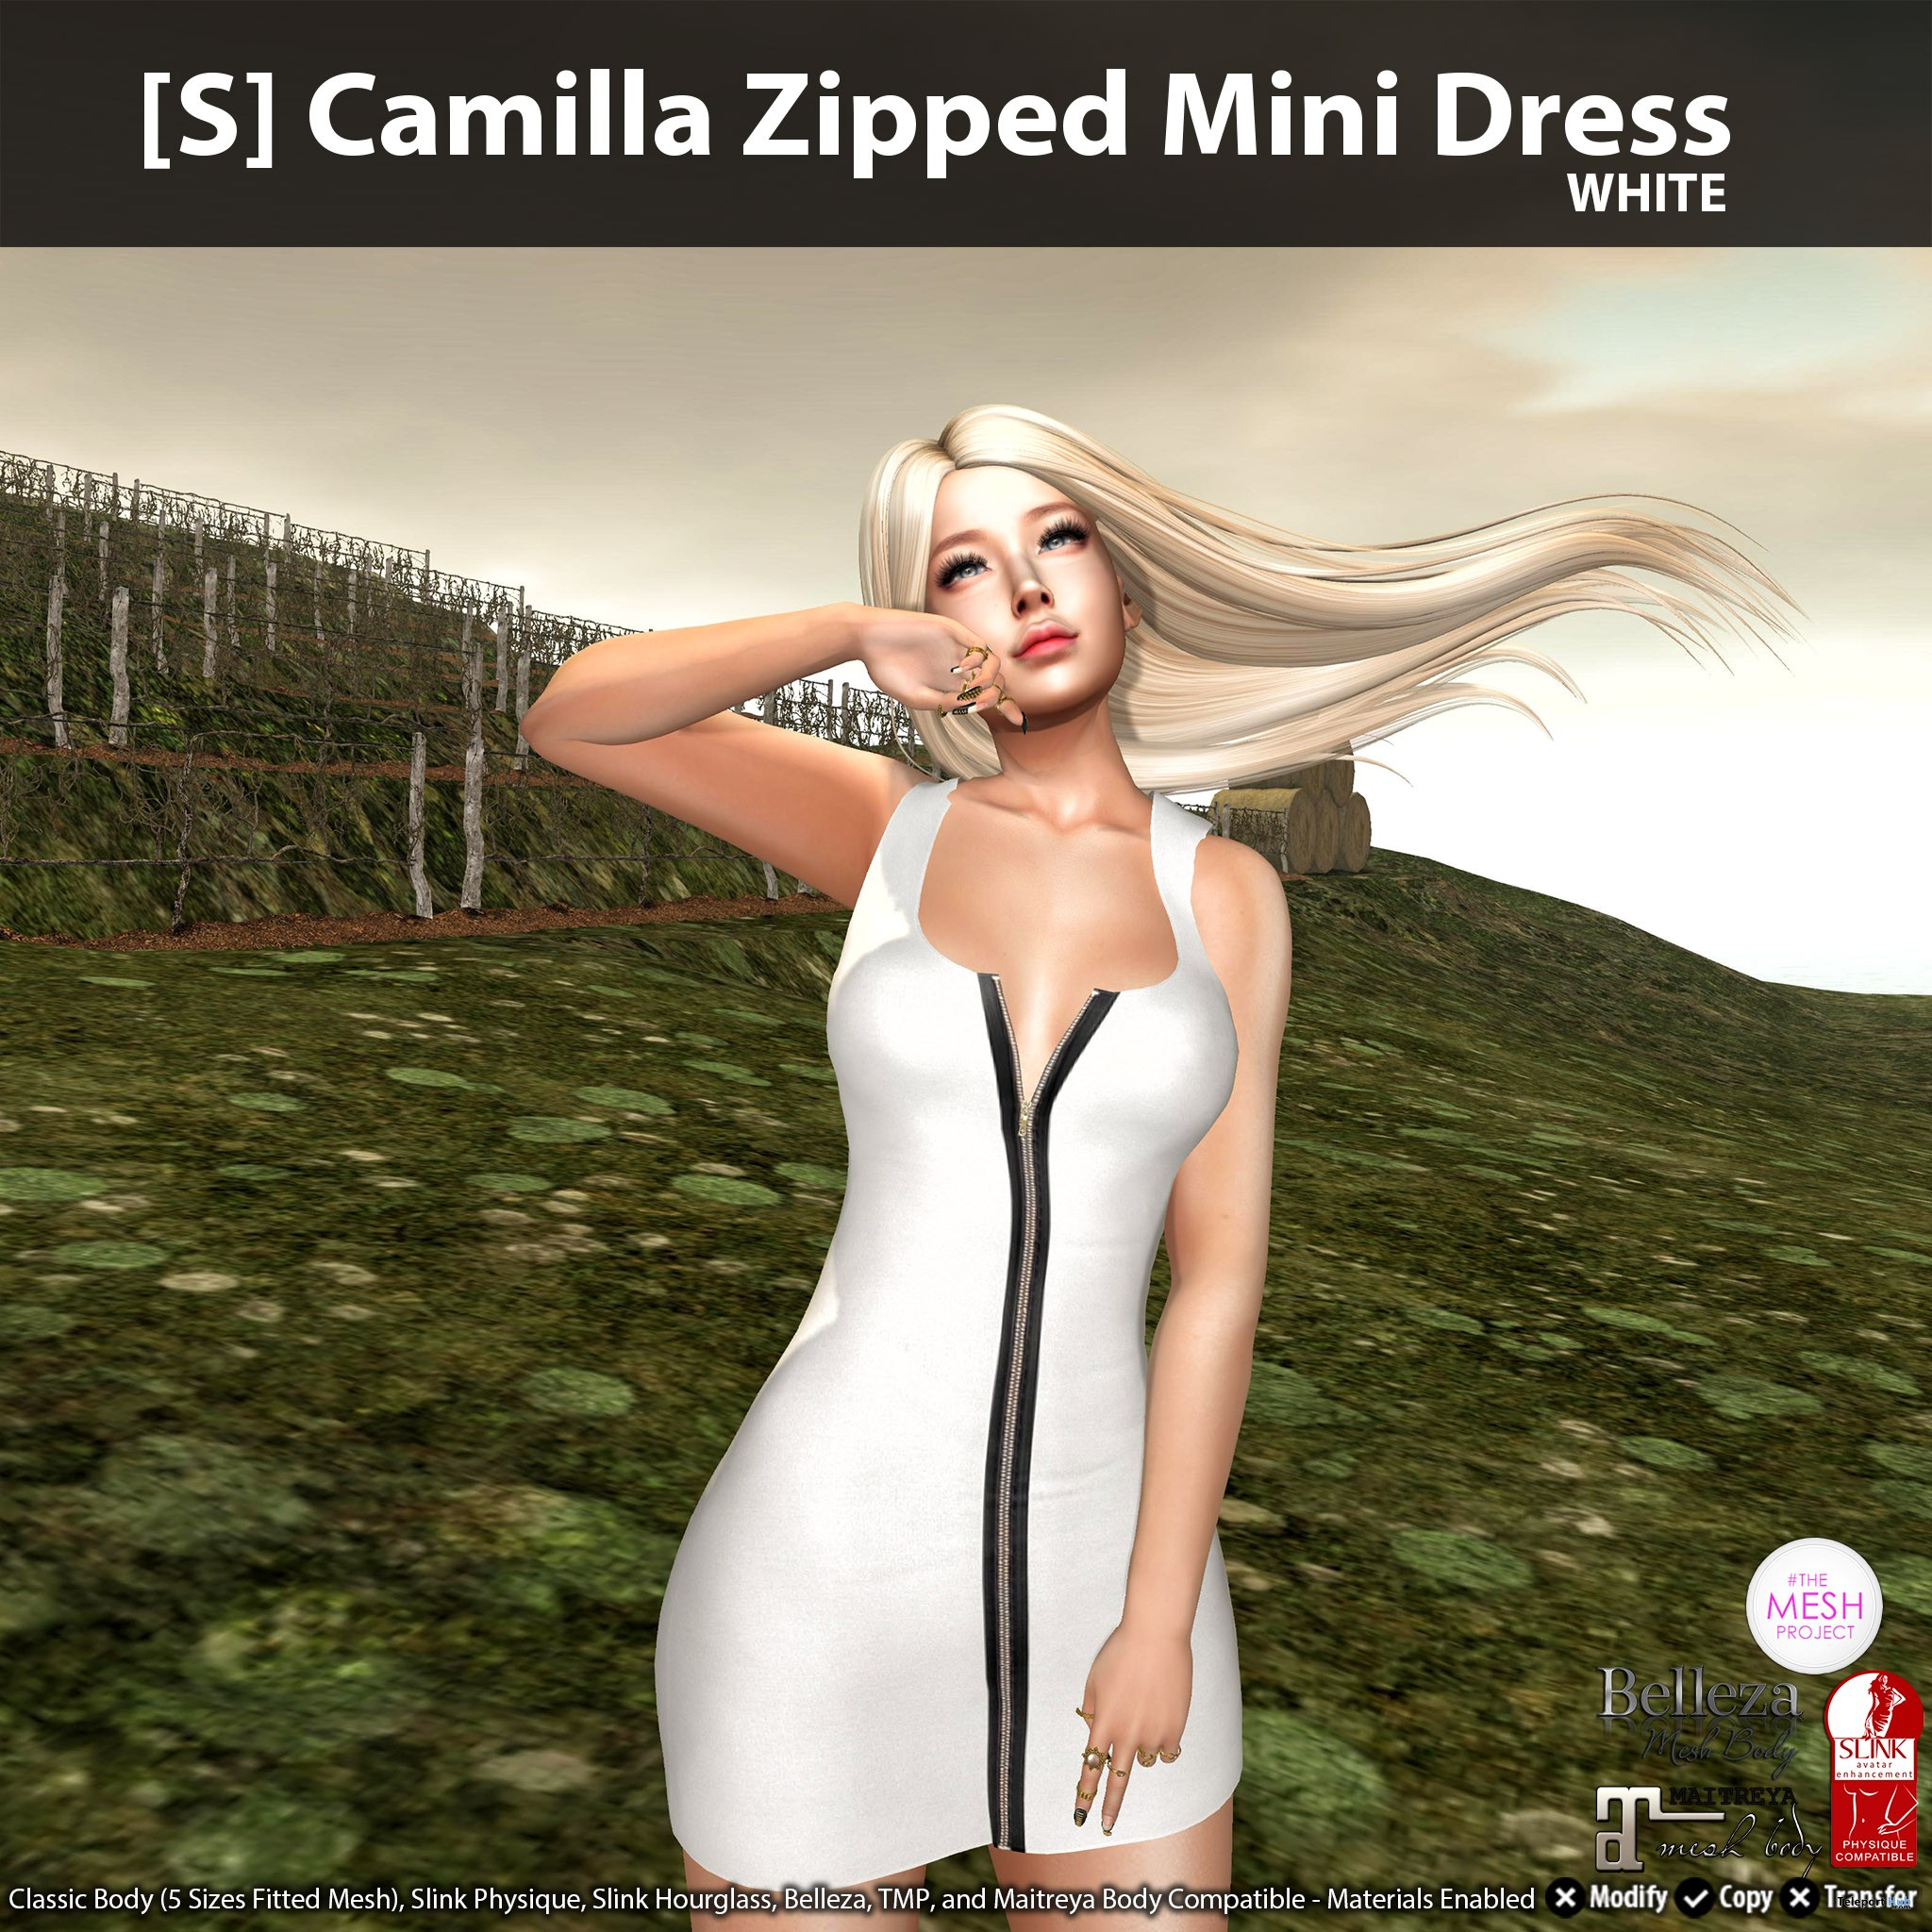 New Release: [S] Camilla Zipped Mini Dress by [satus Inc] - Teleport Hub - teleporthub.com